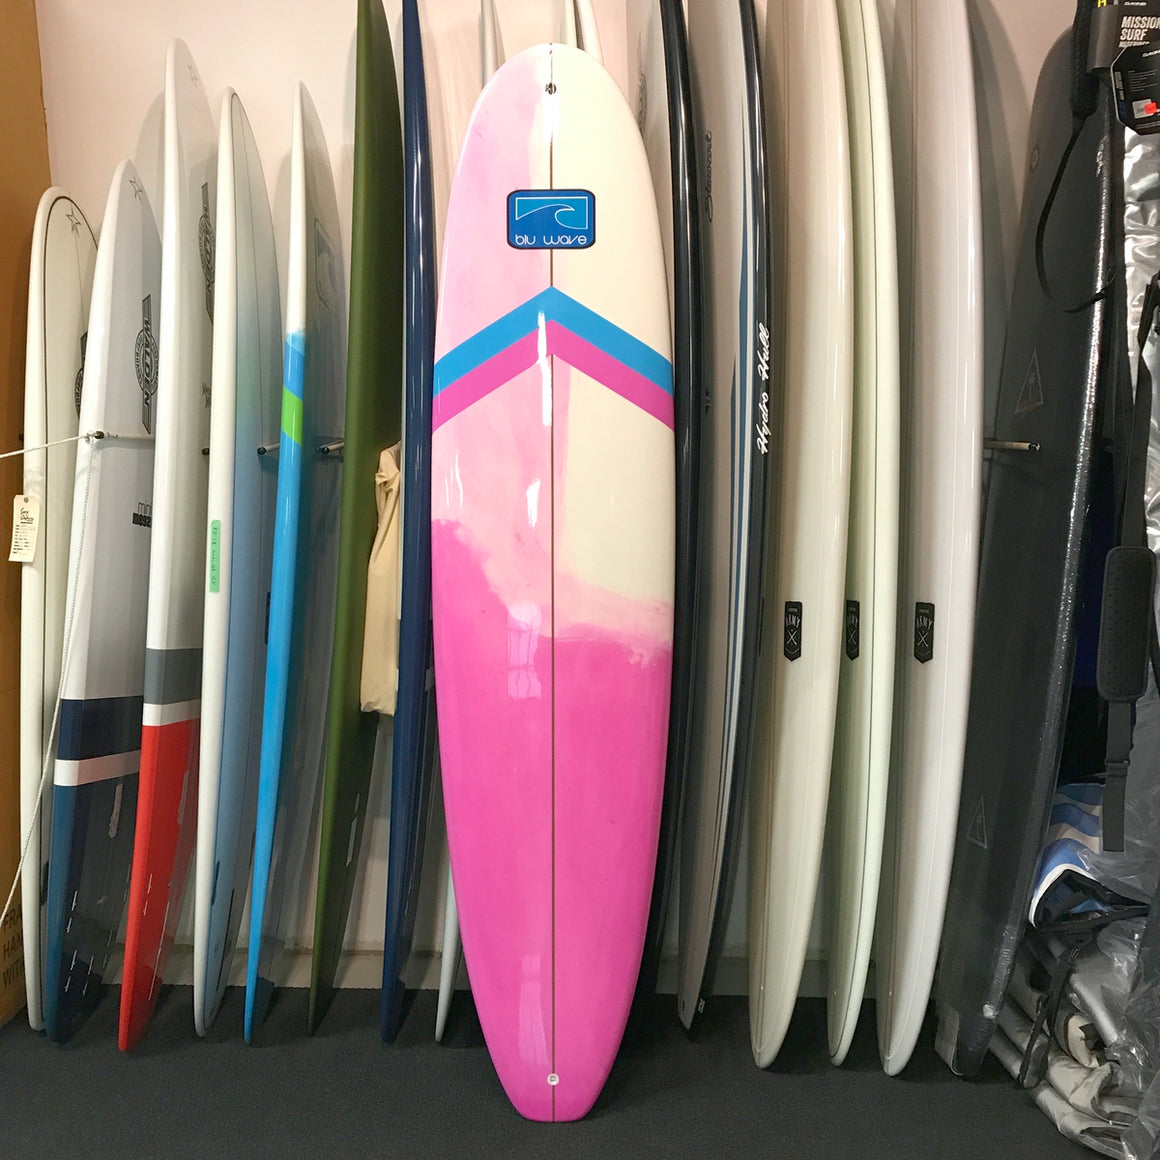 Blu Wave - Surf Series 8.0 Longboard Surfboard - Epoxy - Blu/Pink